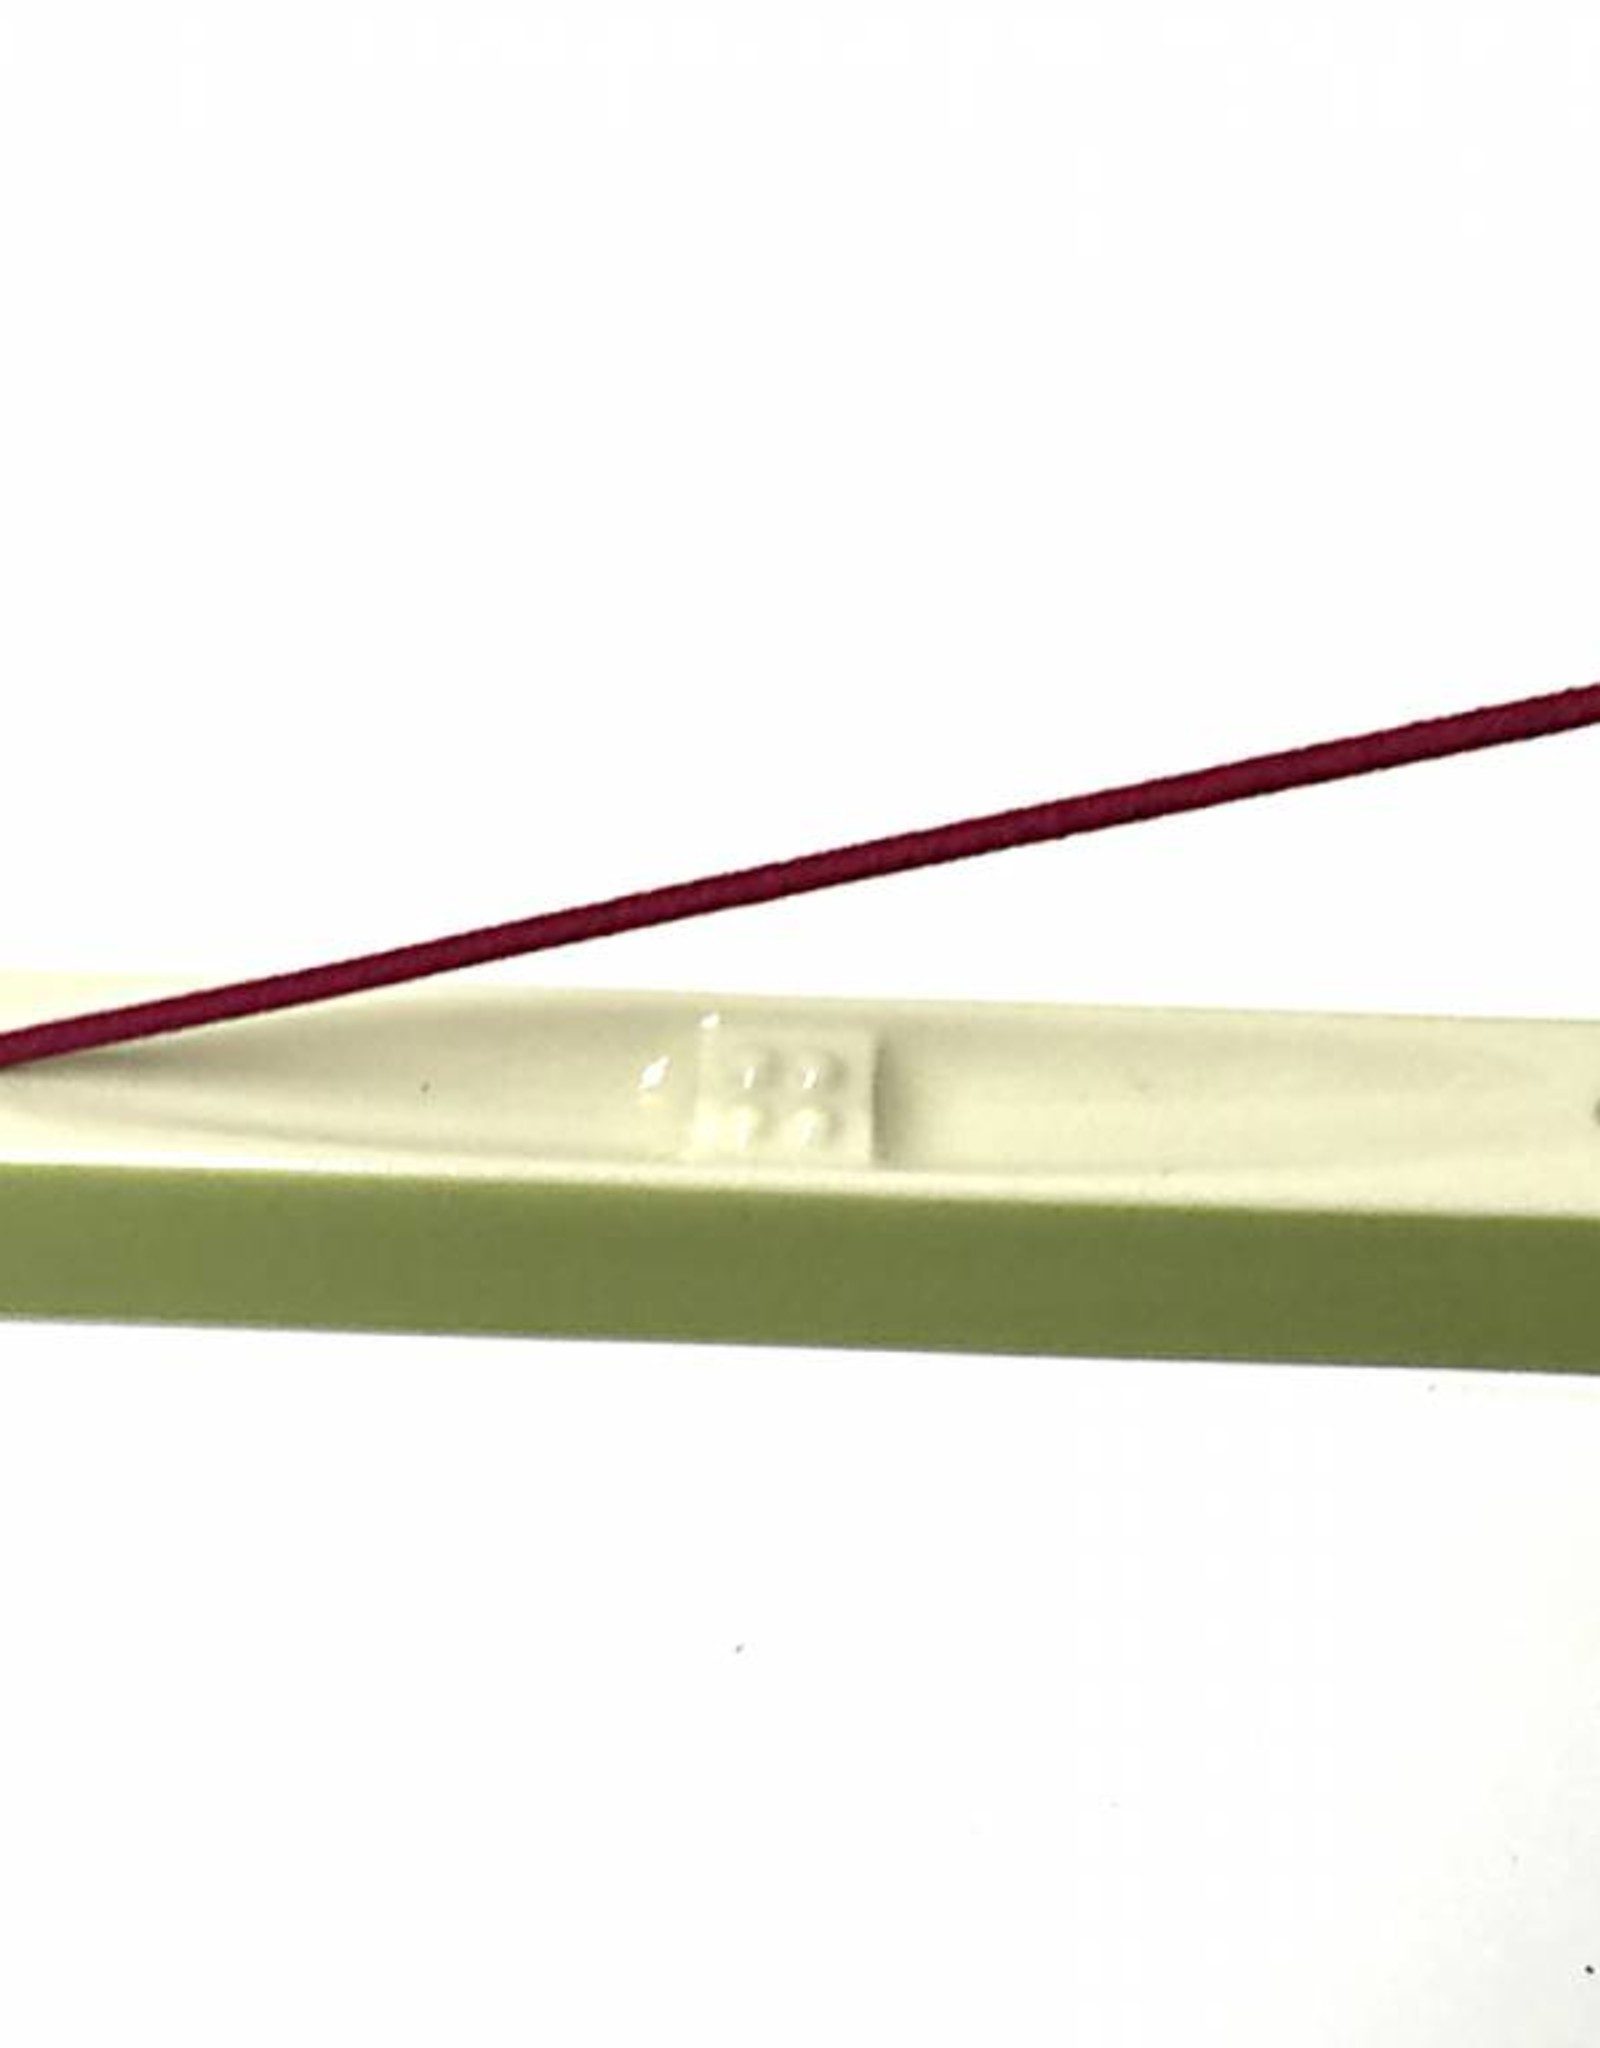 Awaji Island Koh-shi Incense holder for two sizes of incense